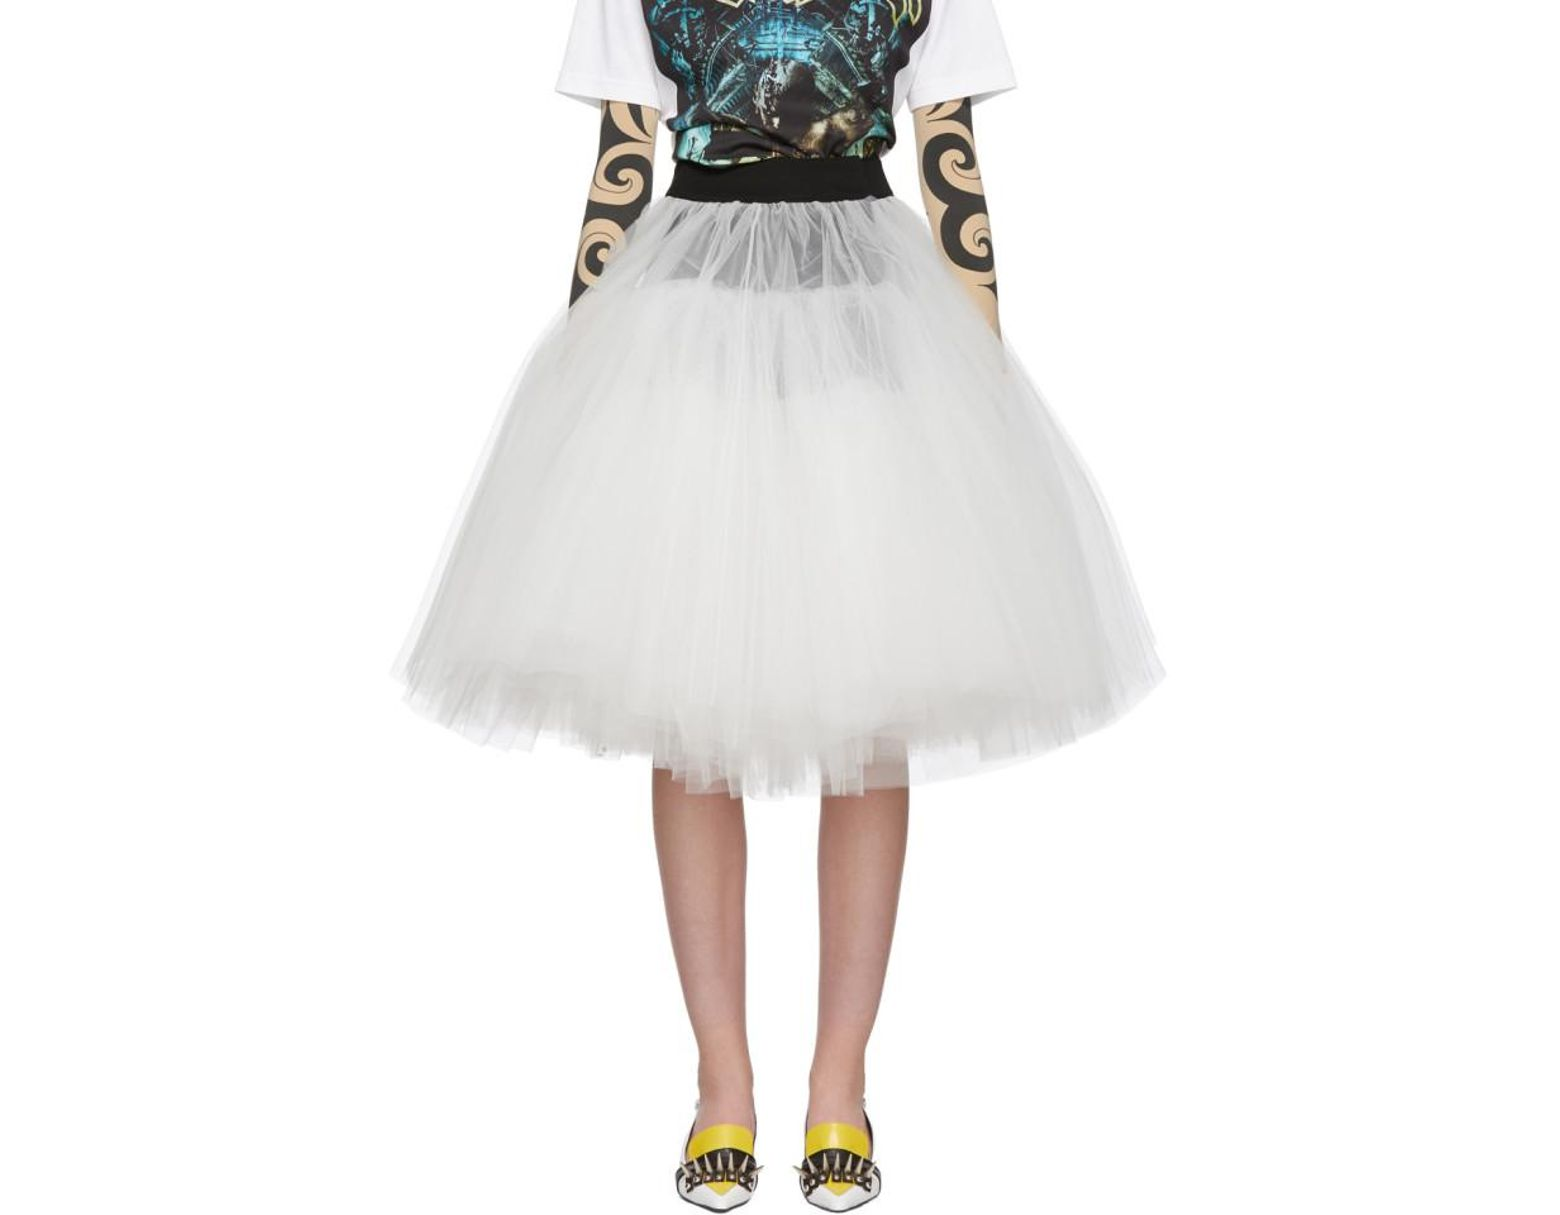 689a6ab2c6 Junya Watanabe Black And White Tulle Skirt in Black - Lyst